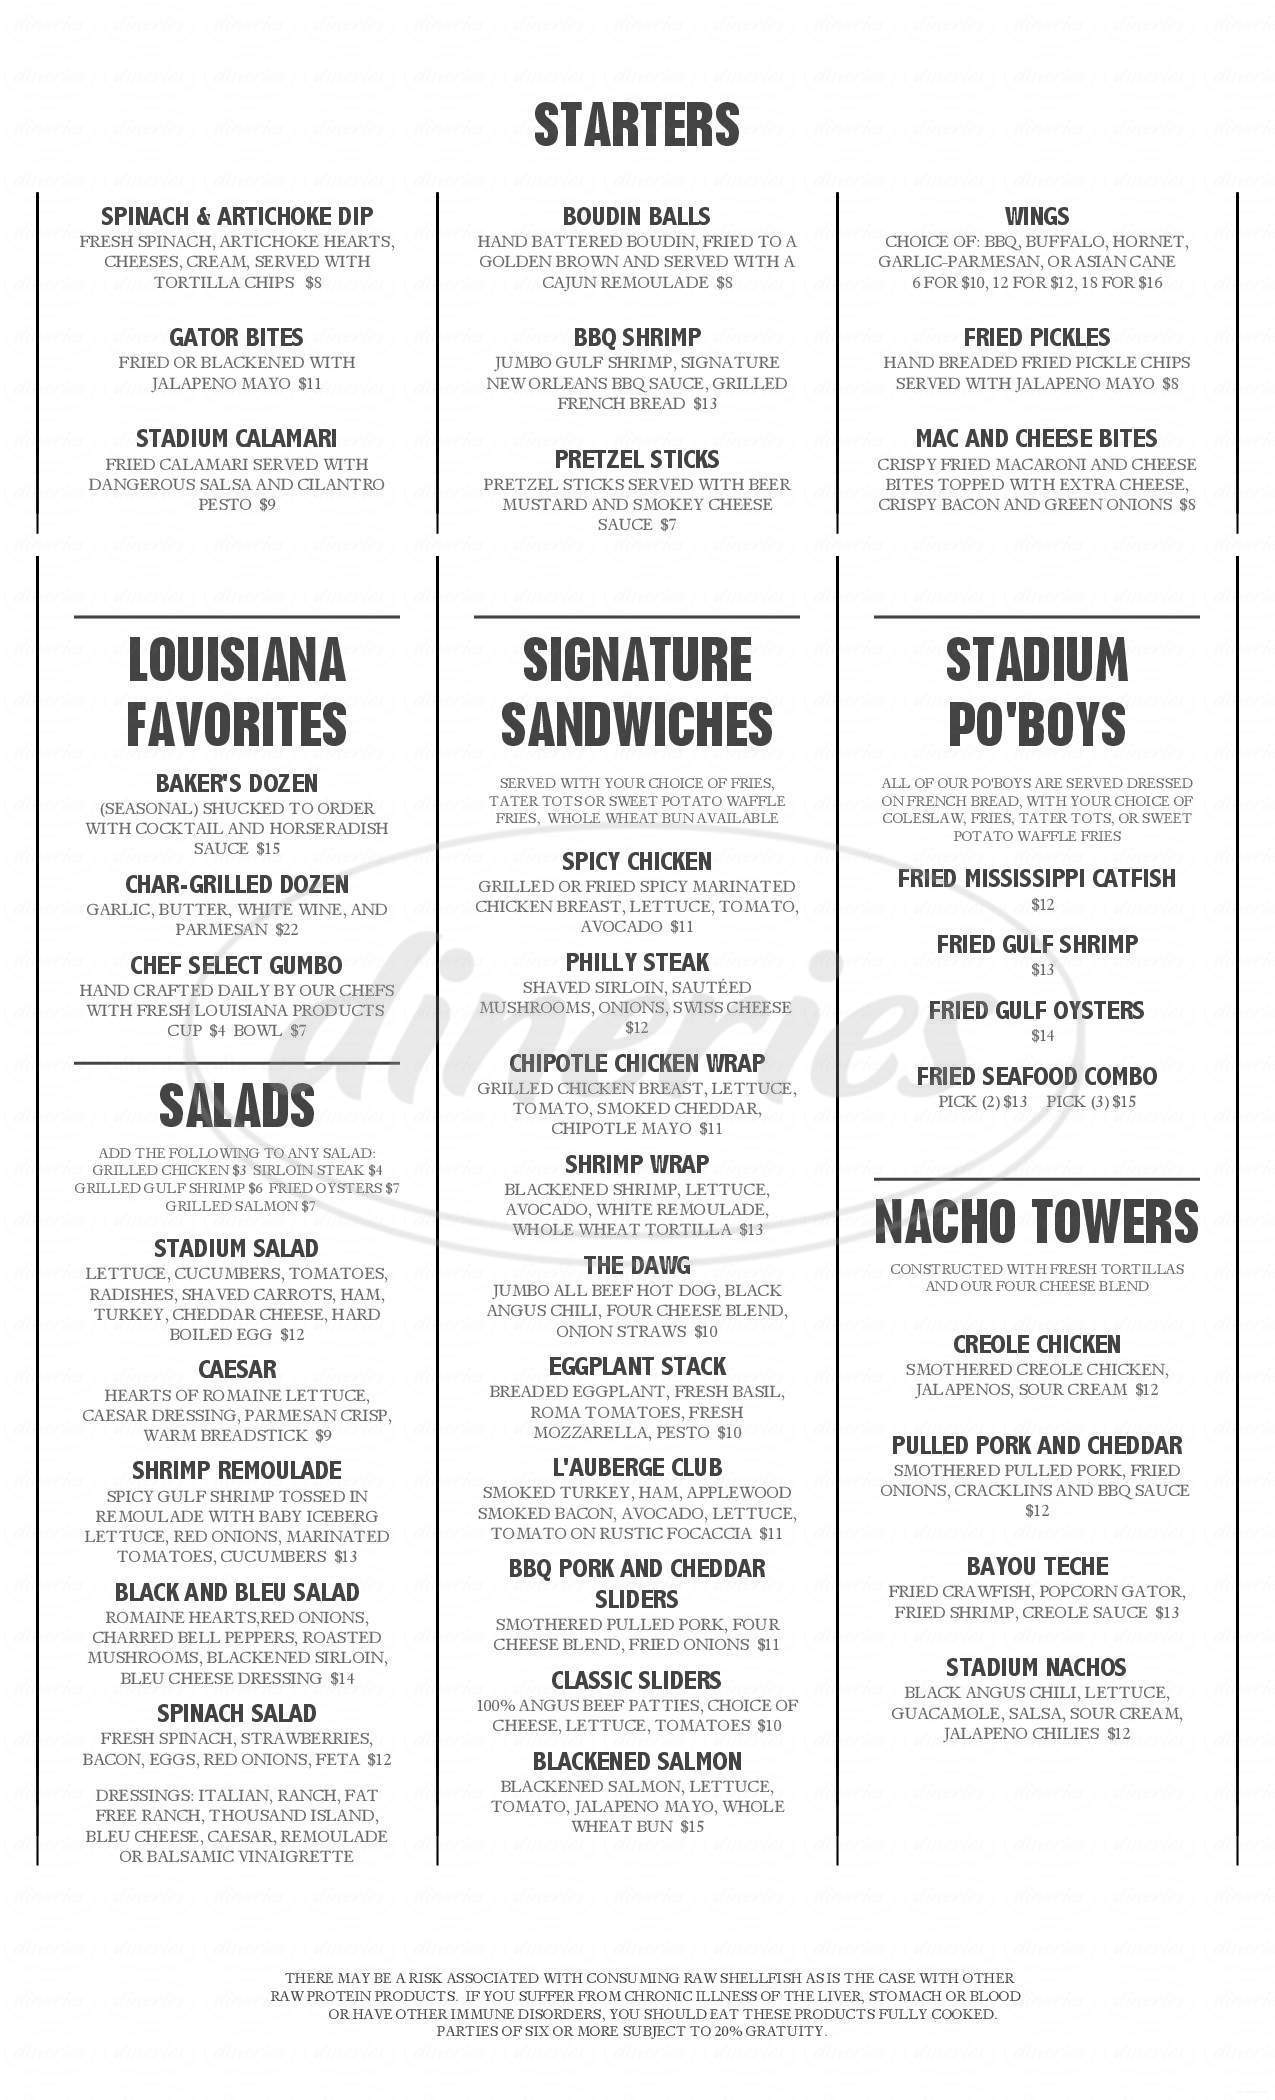 menu for Stadium